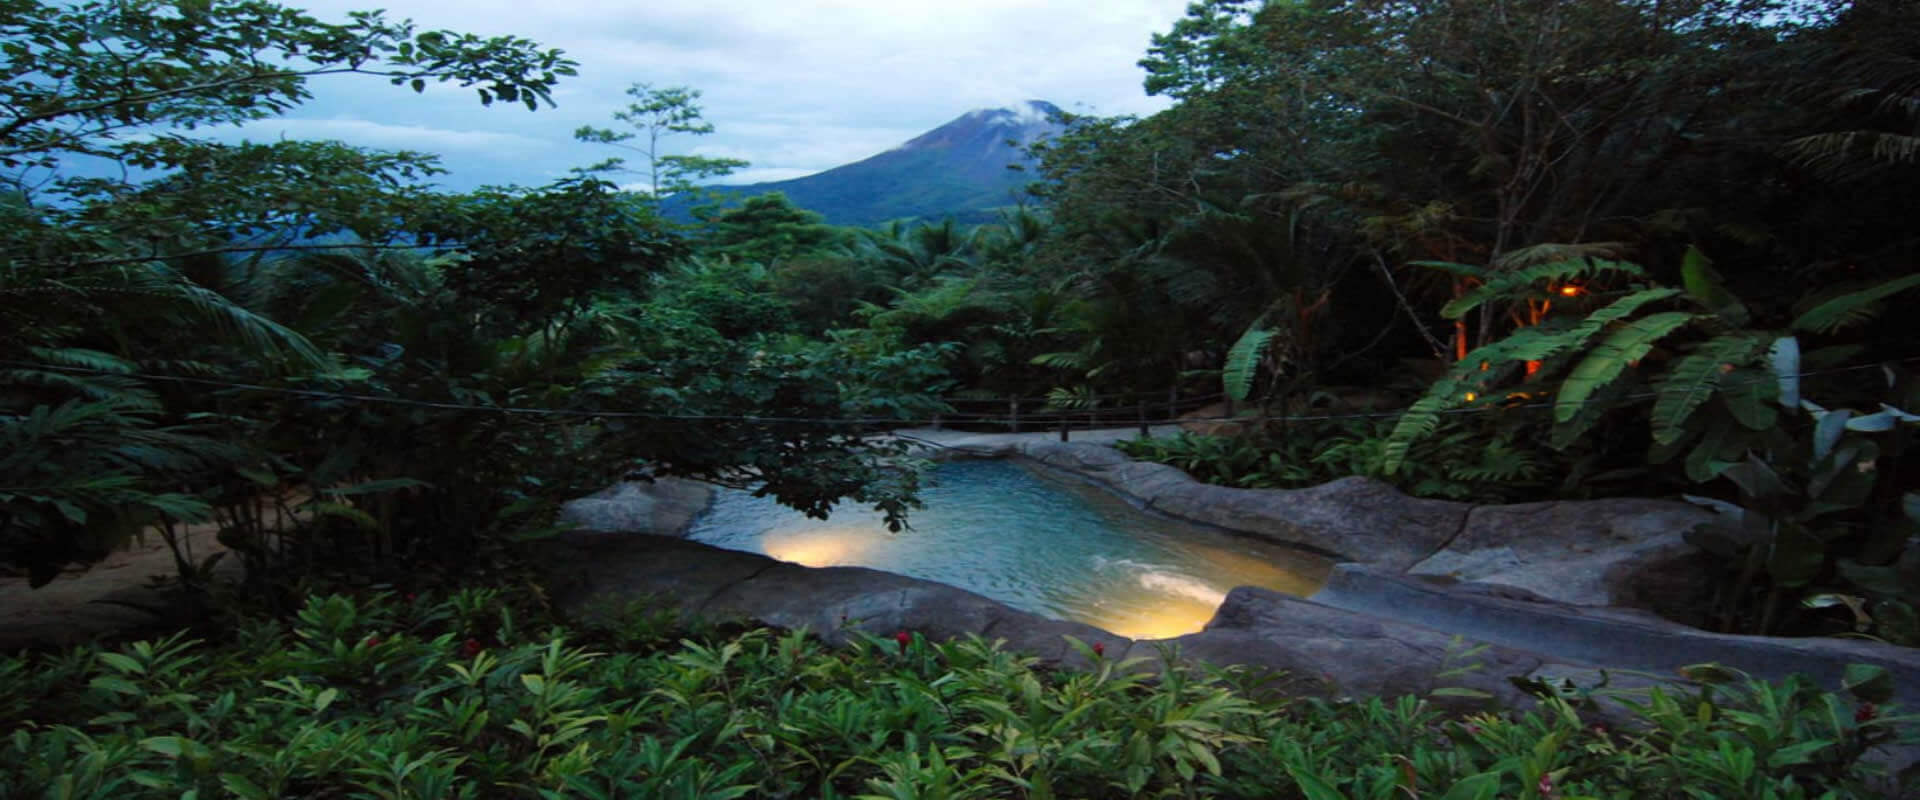 The Springs, La Fortuna, Costa Rica